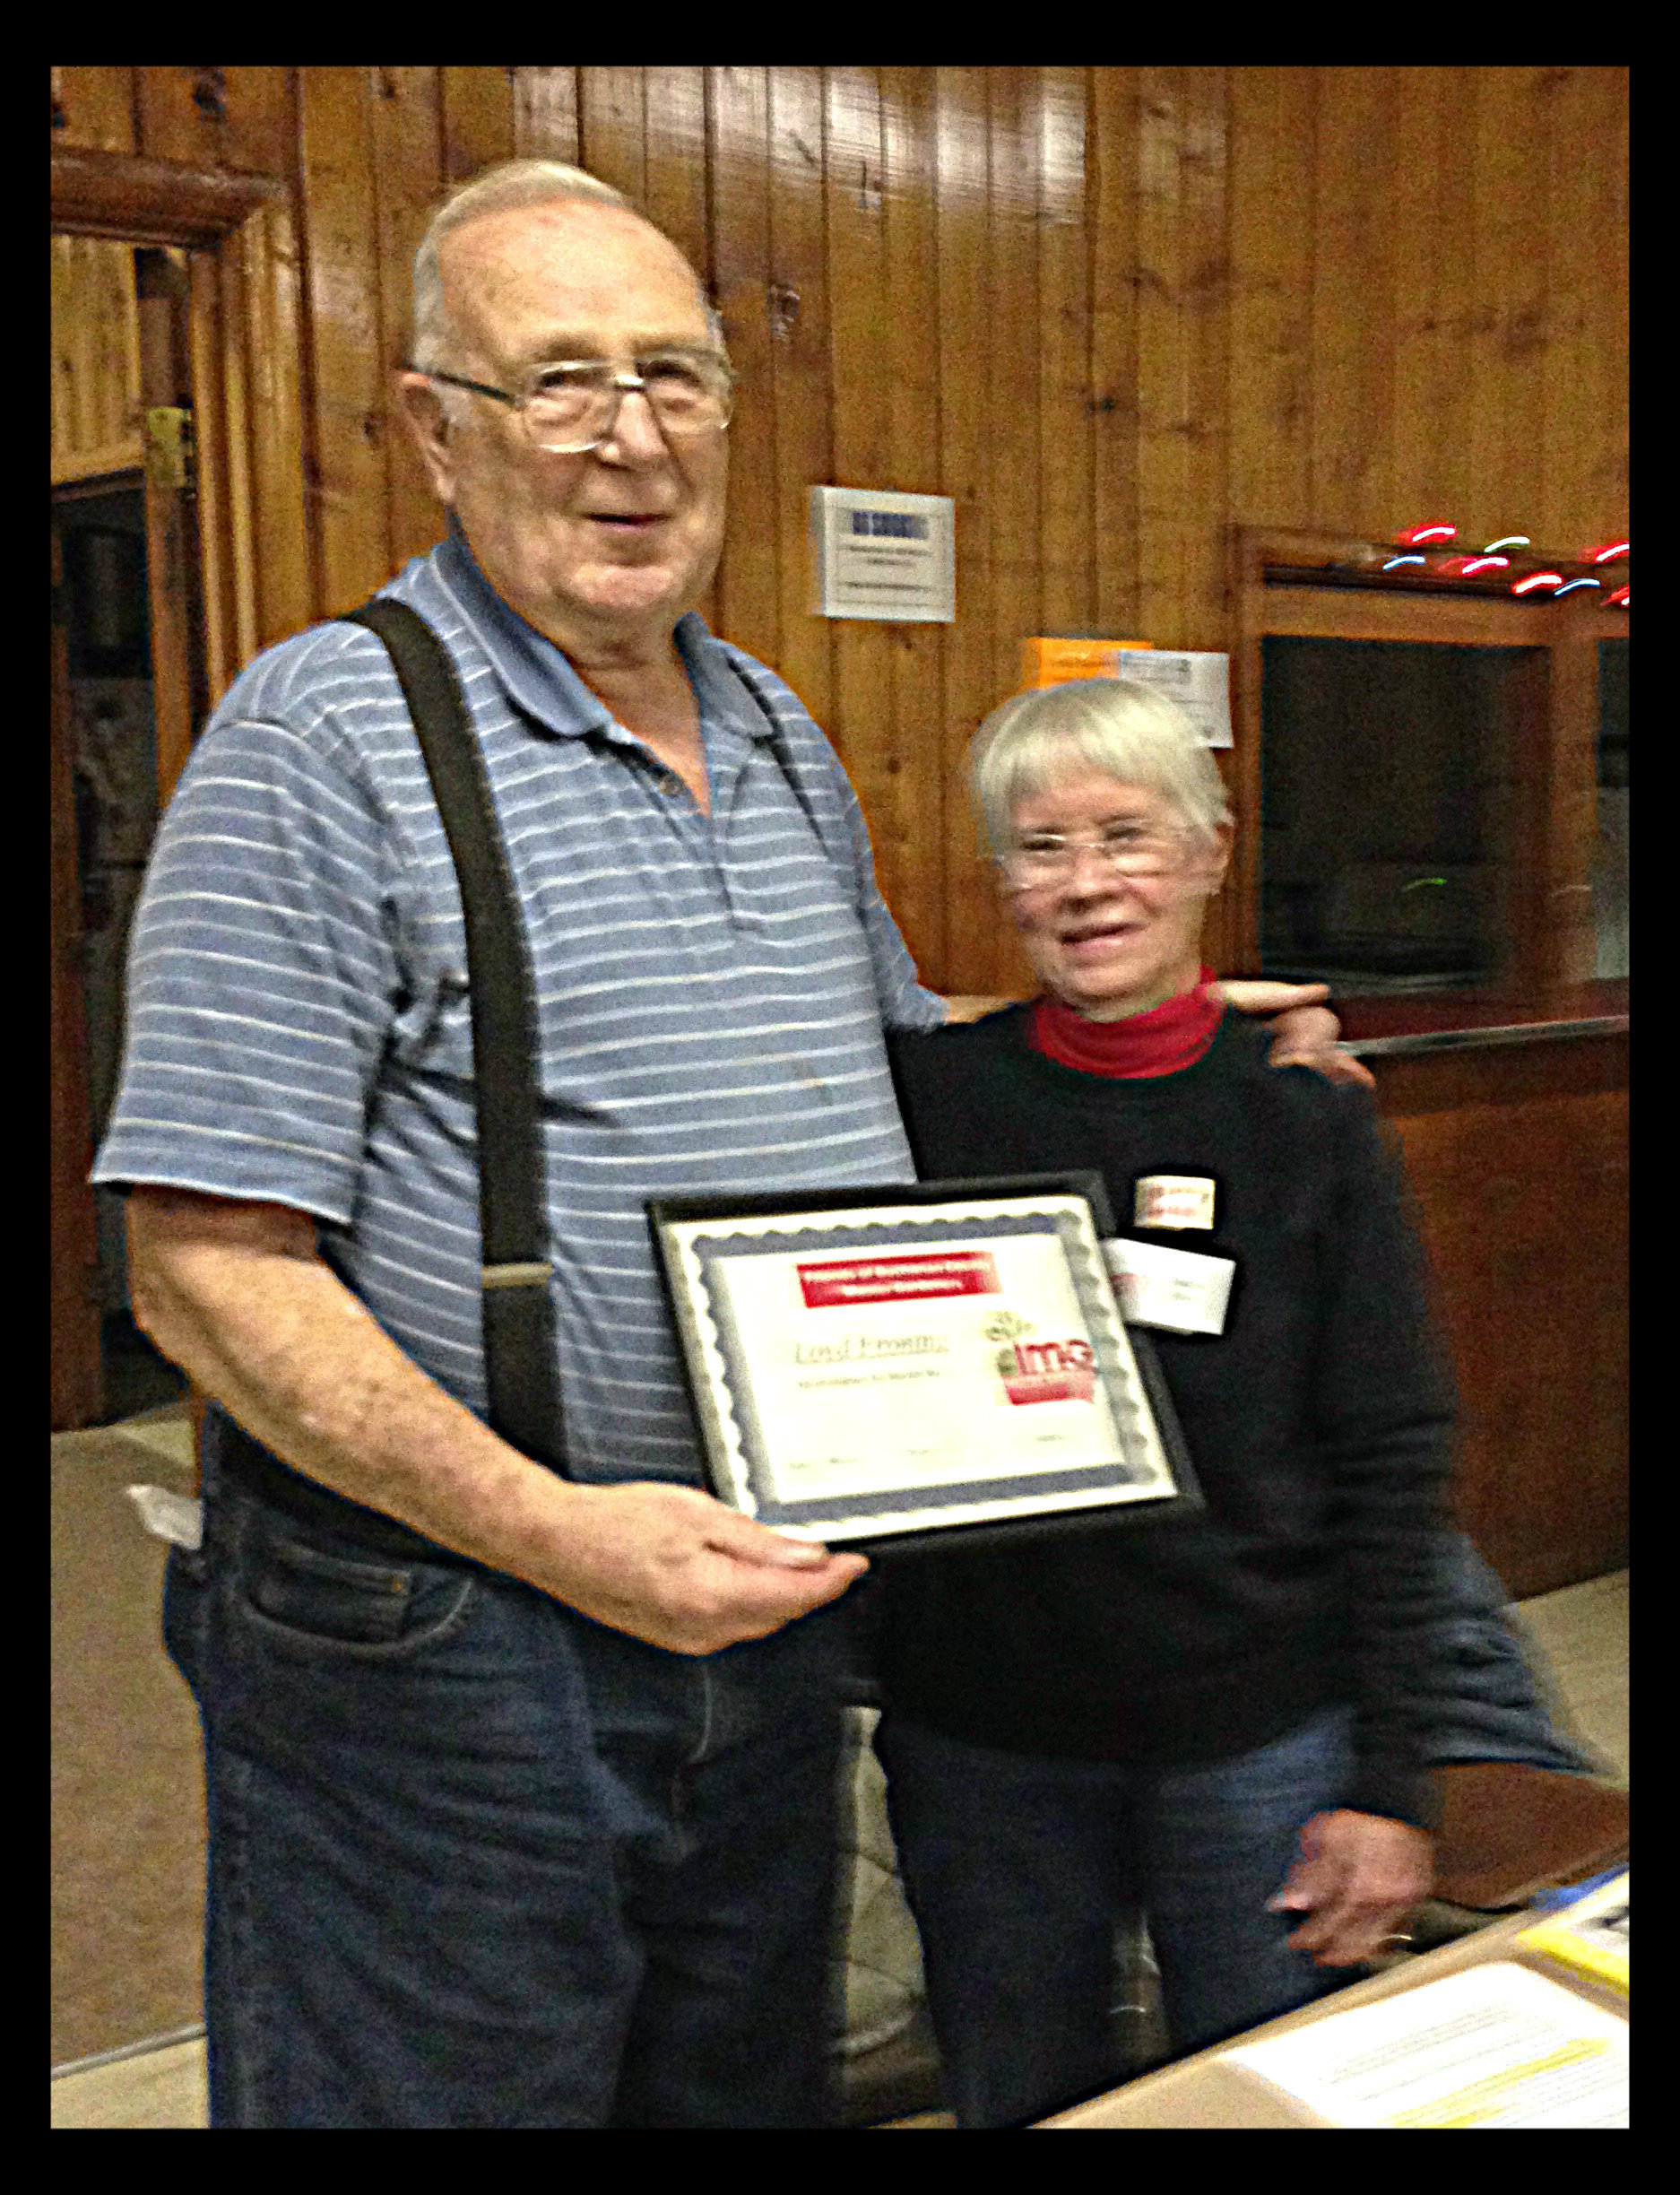 Loyd Froning (1935 - 2014) receiving a Master Gardener volunteer certificate.